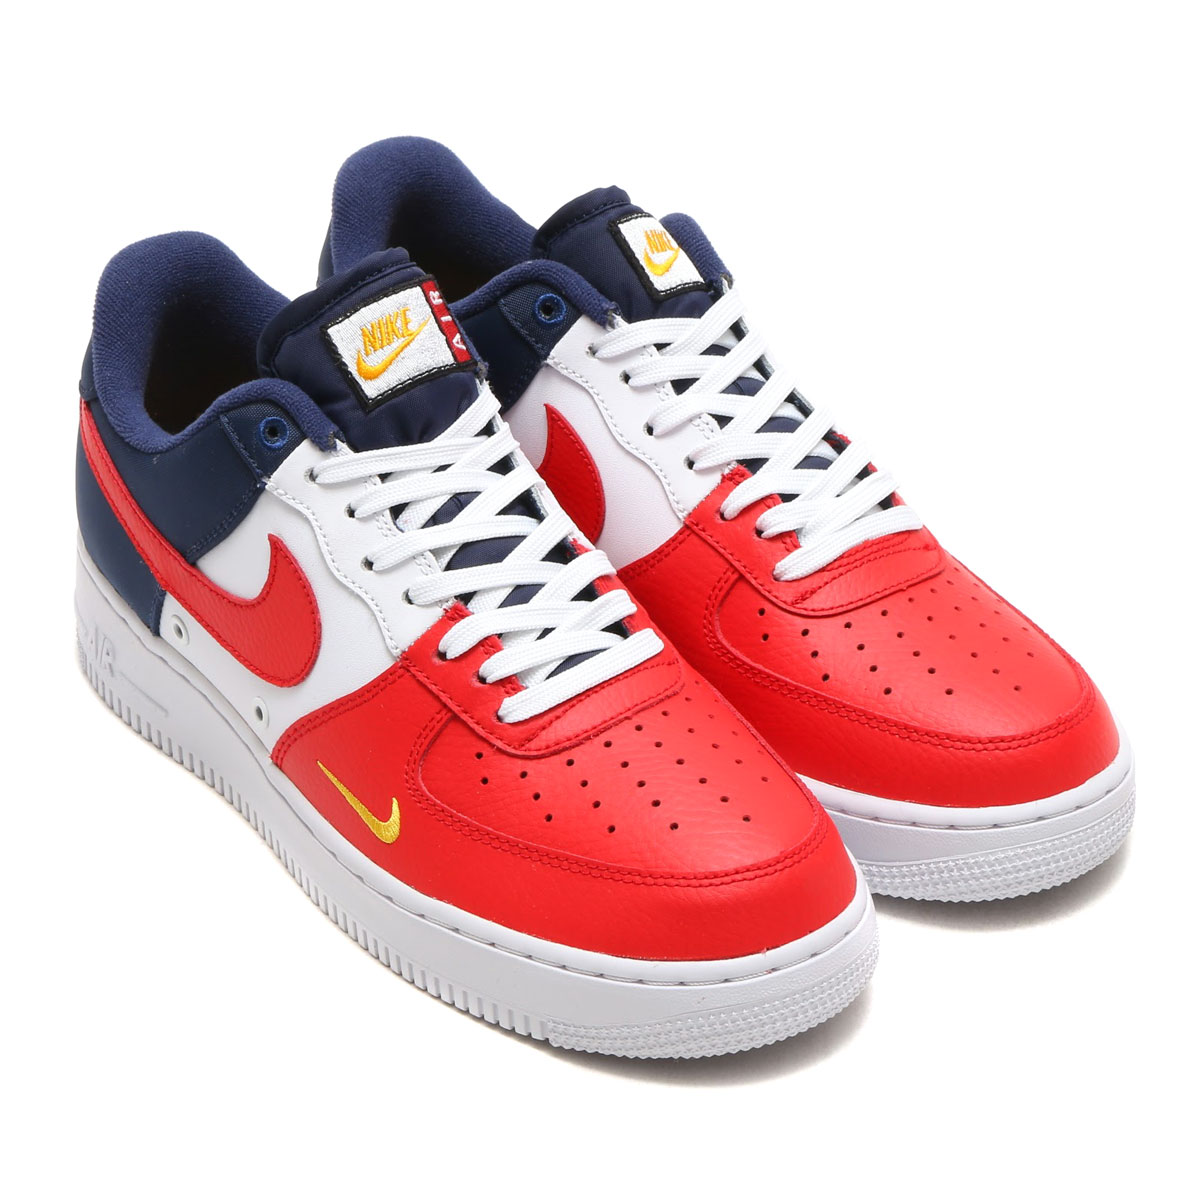 nike men's air force 1 '07 lv8 red navy gold nz